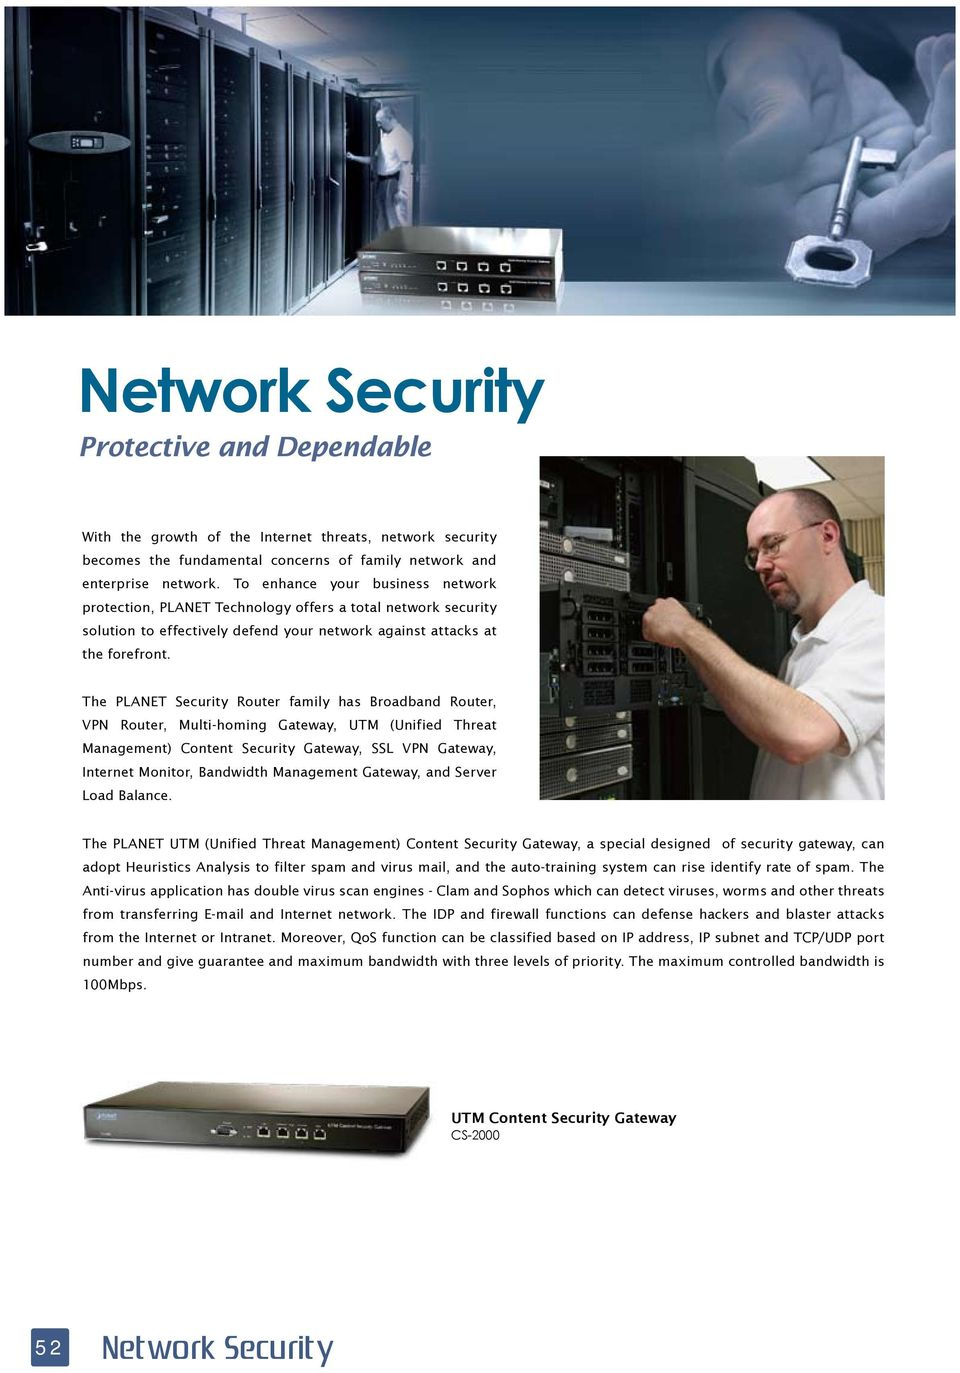 The PLANET Security Router family has, VPN Router, Multi-homing Gateway, UTM (Unified Threat Management) Content Security Gateway, SSL VPN Gateway, Internet Monitor, Bandwidth Management Gateway, and